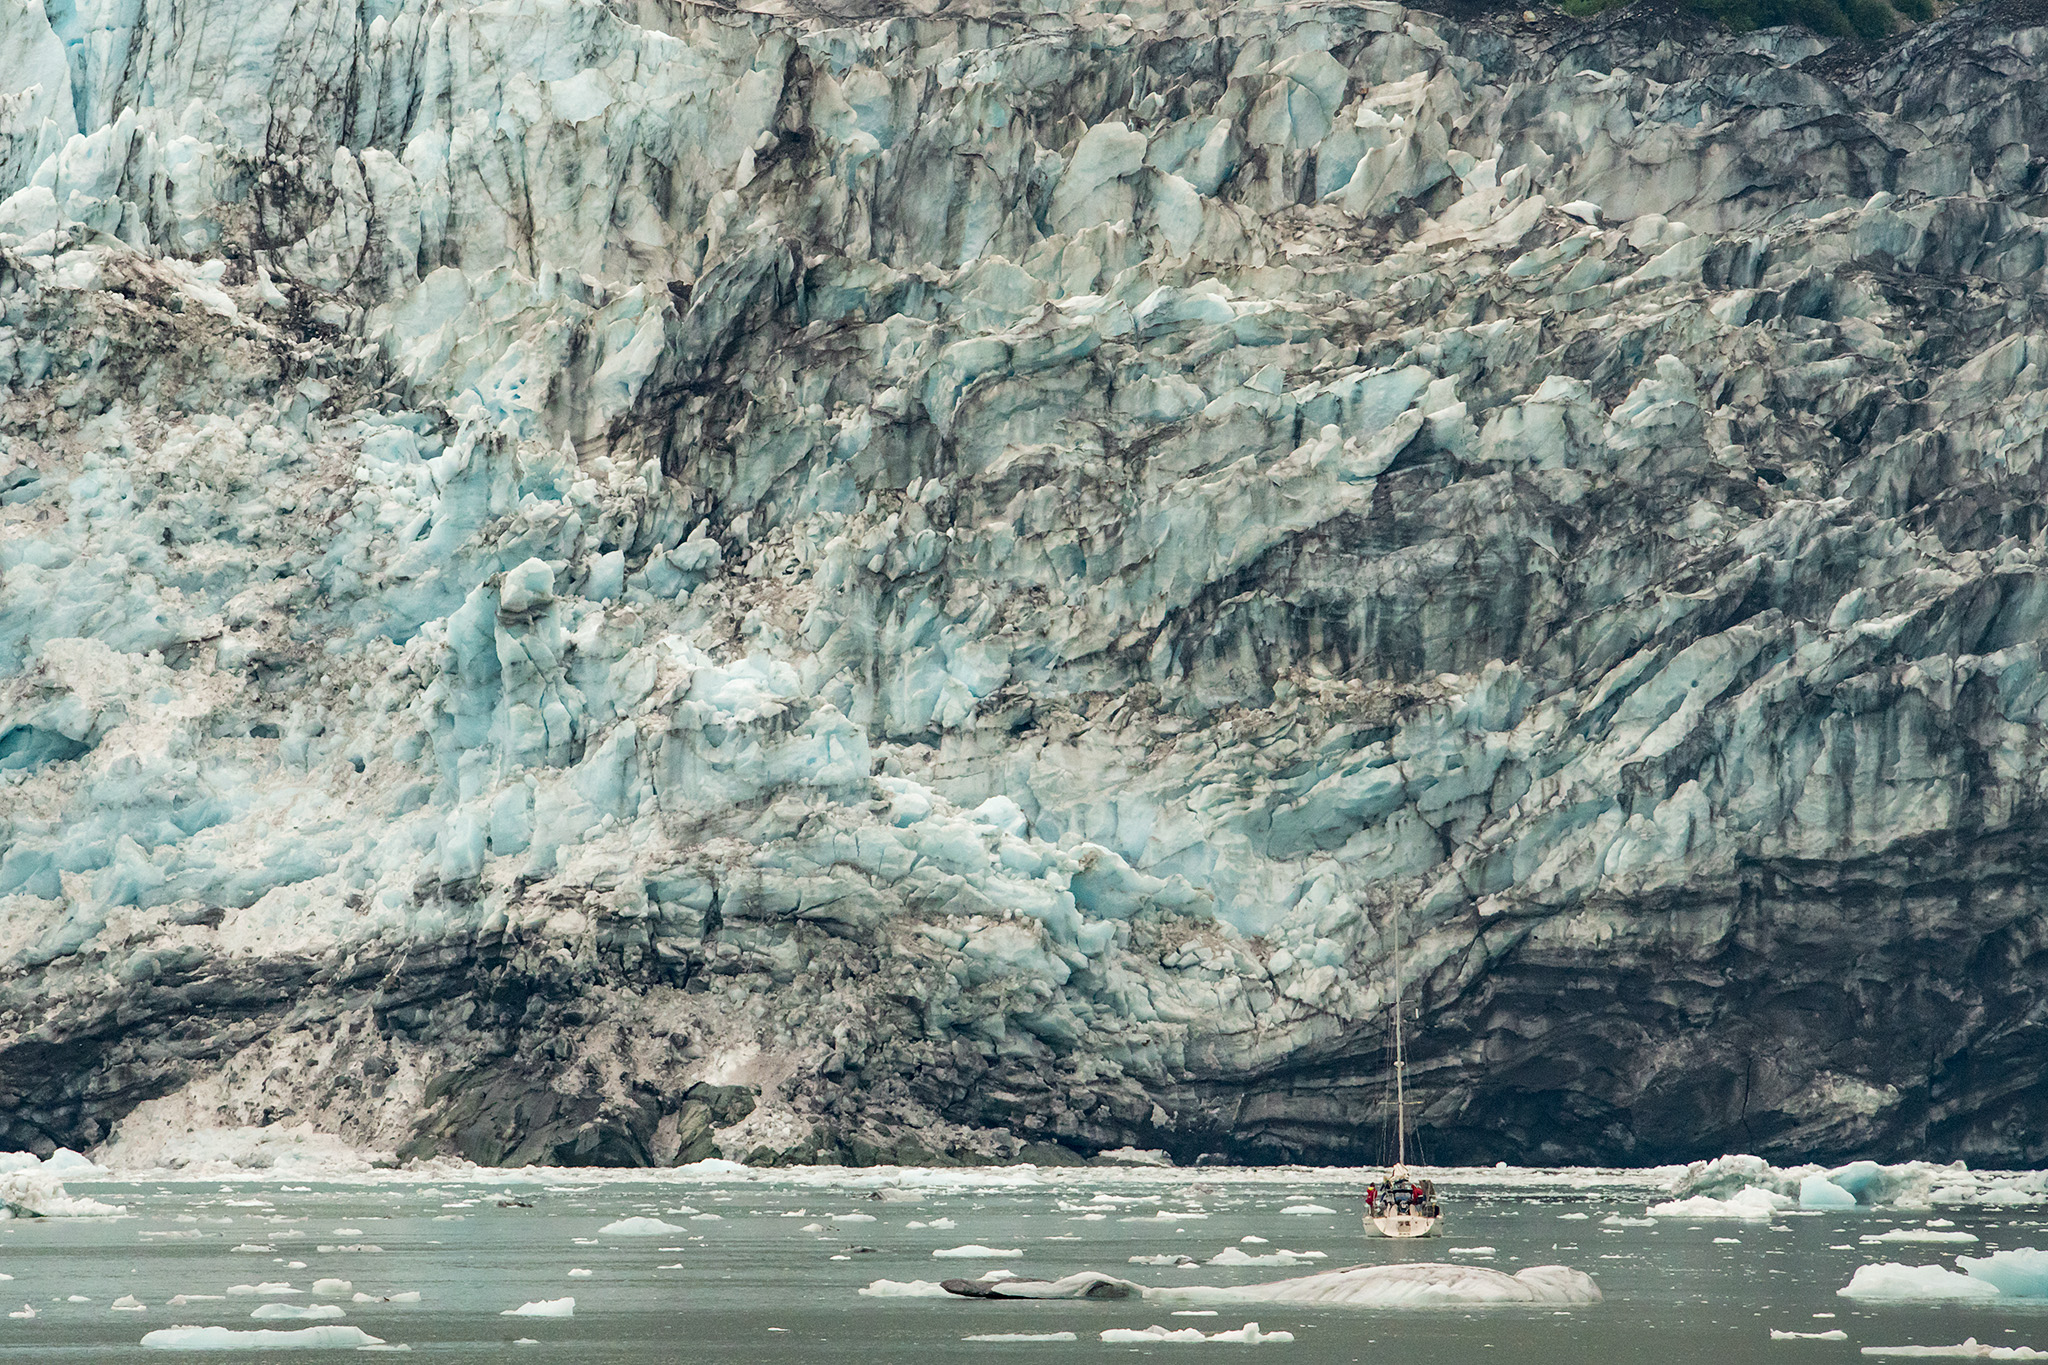 Can you spot the sailboat? This 25-40 foot sailboat is dwarfed by the glacier!